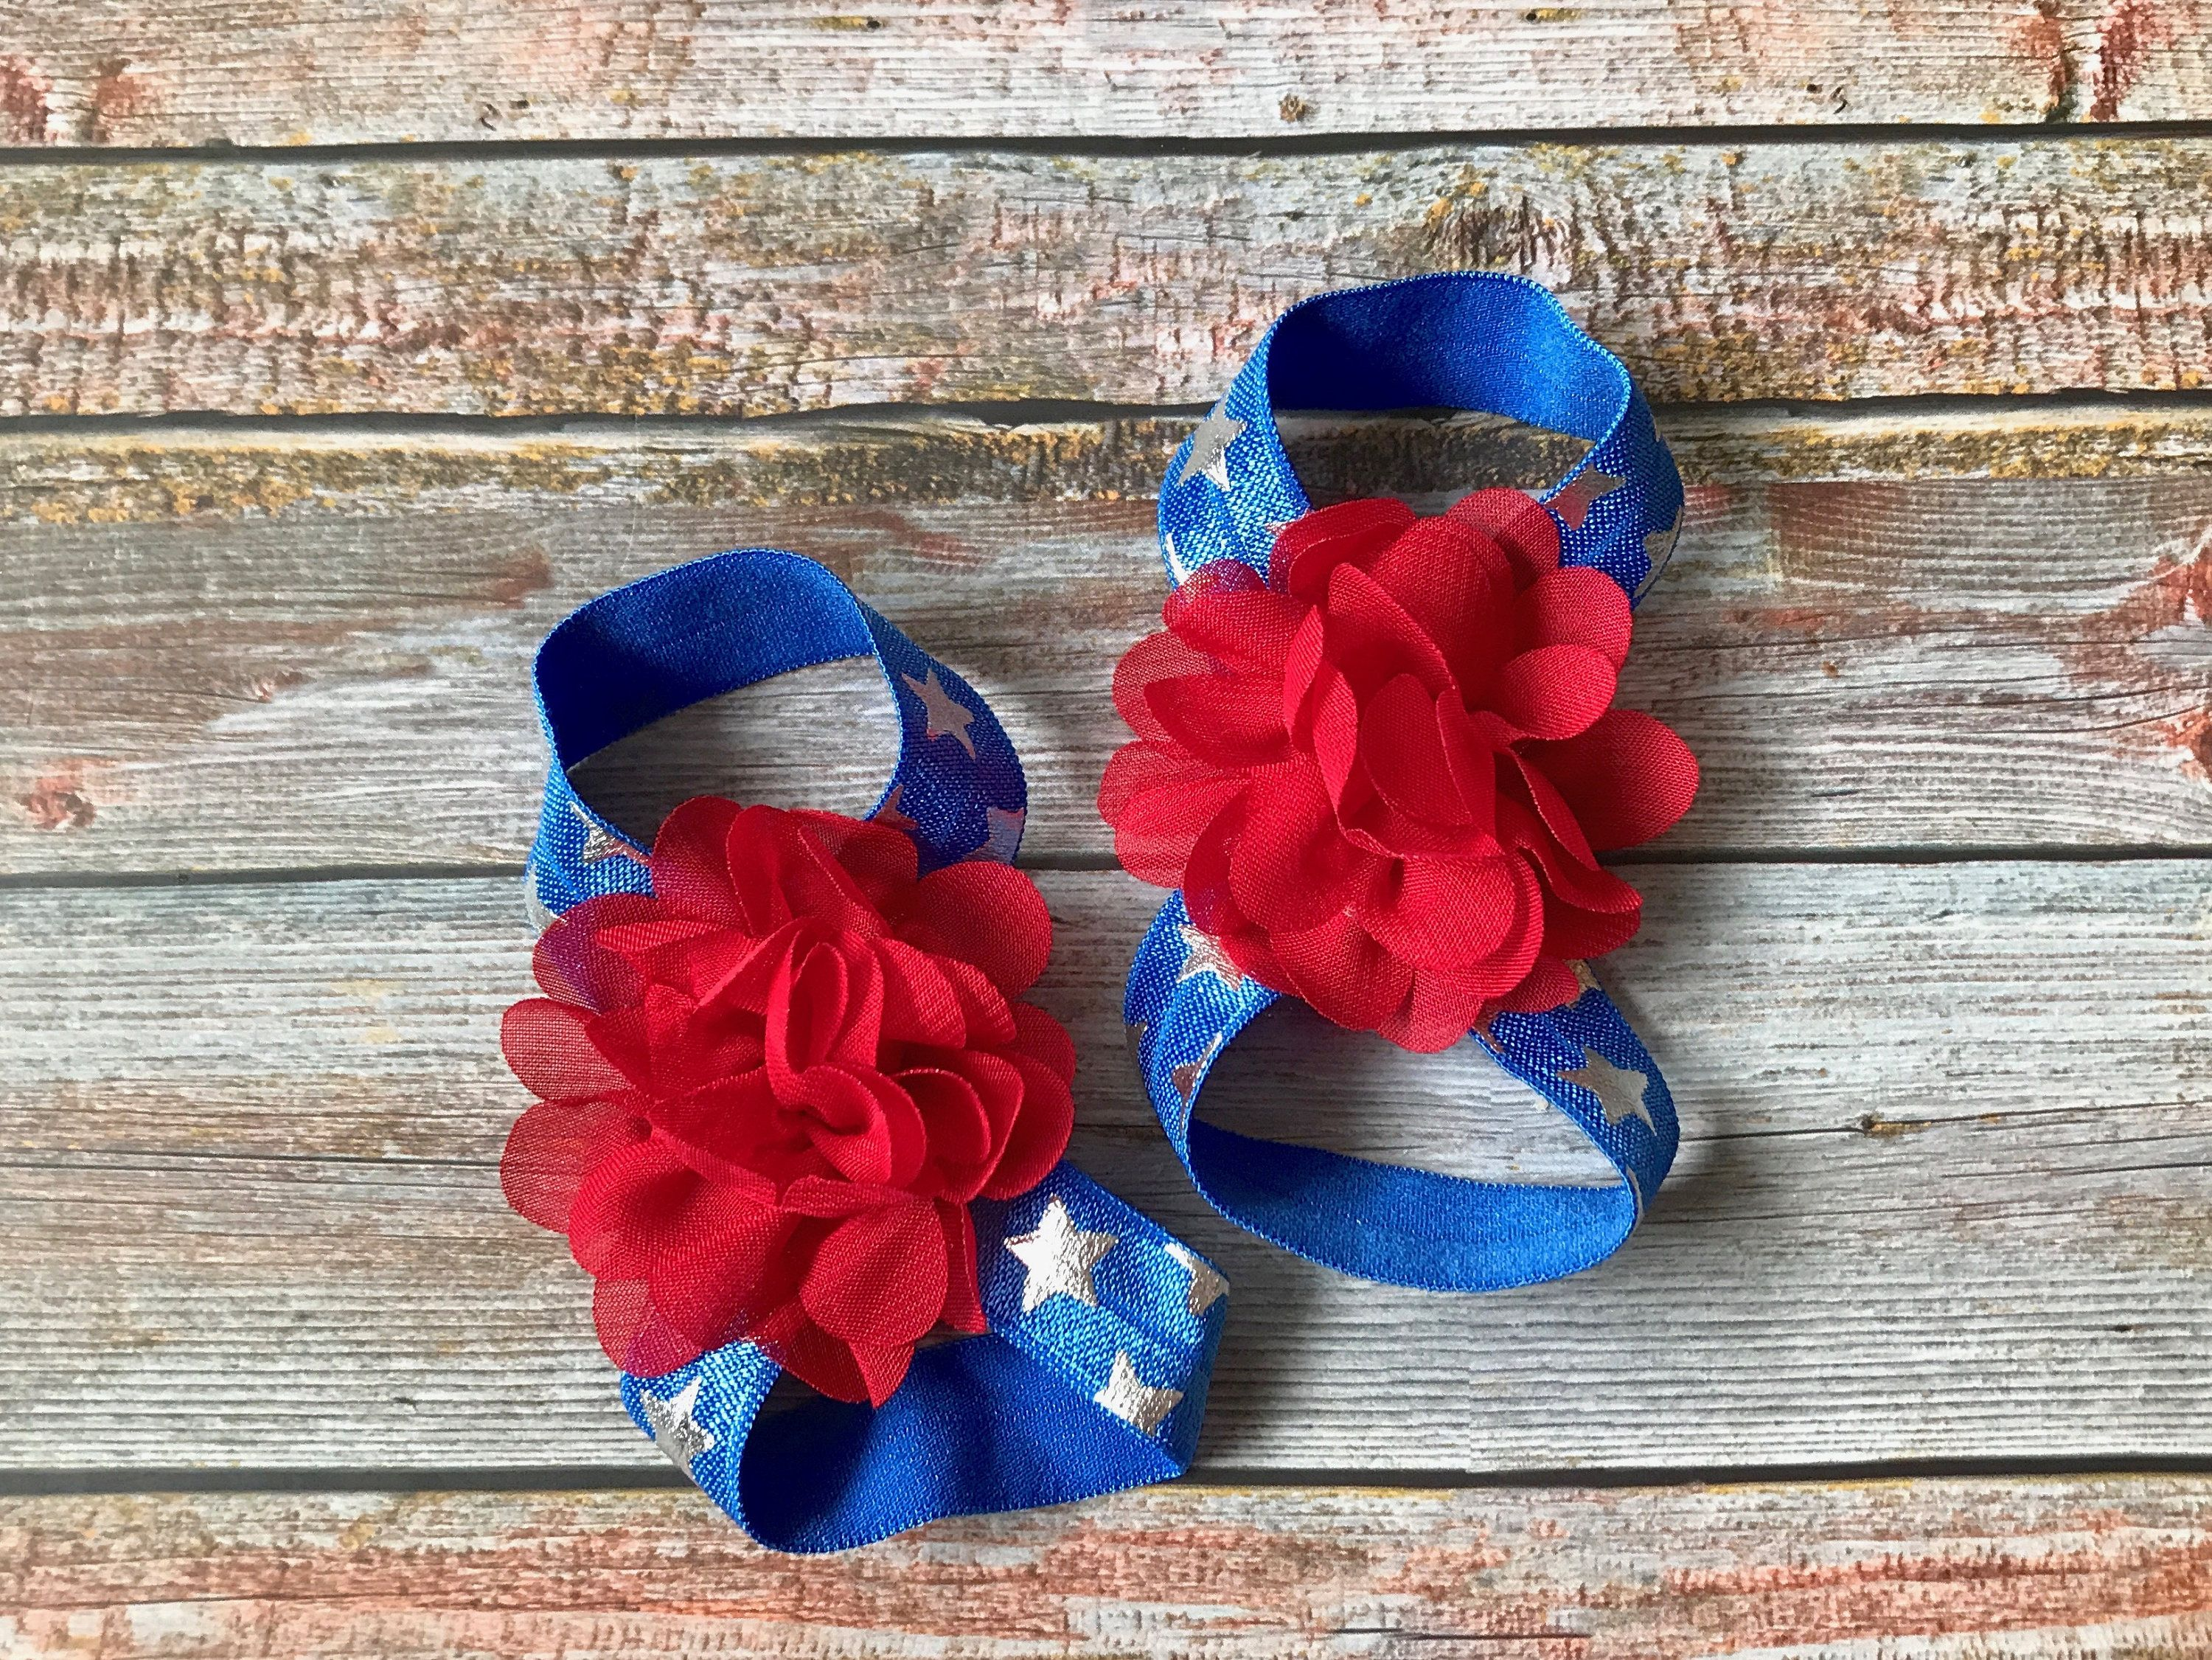 4th of july barefoot sandals,patriotic baby barefoot sandals 4th of july baby sandals baby sandals 4th of July baby barefoot sandals